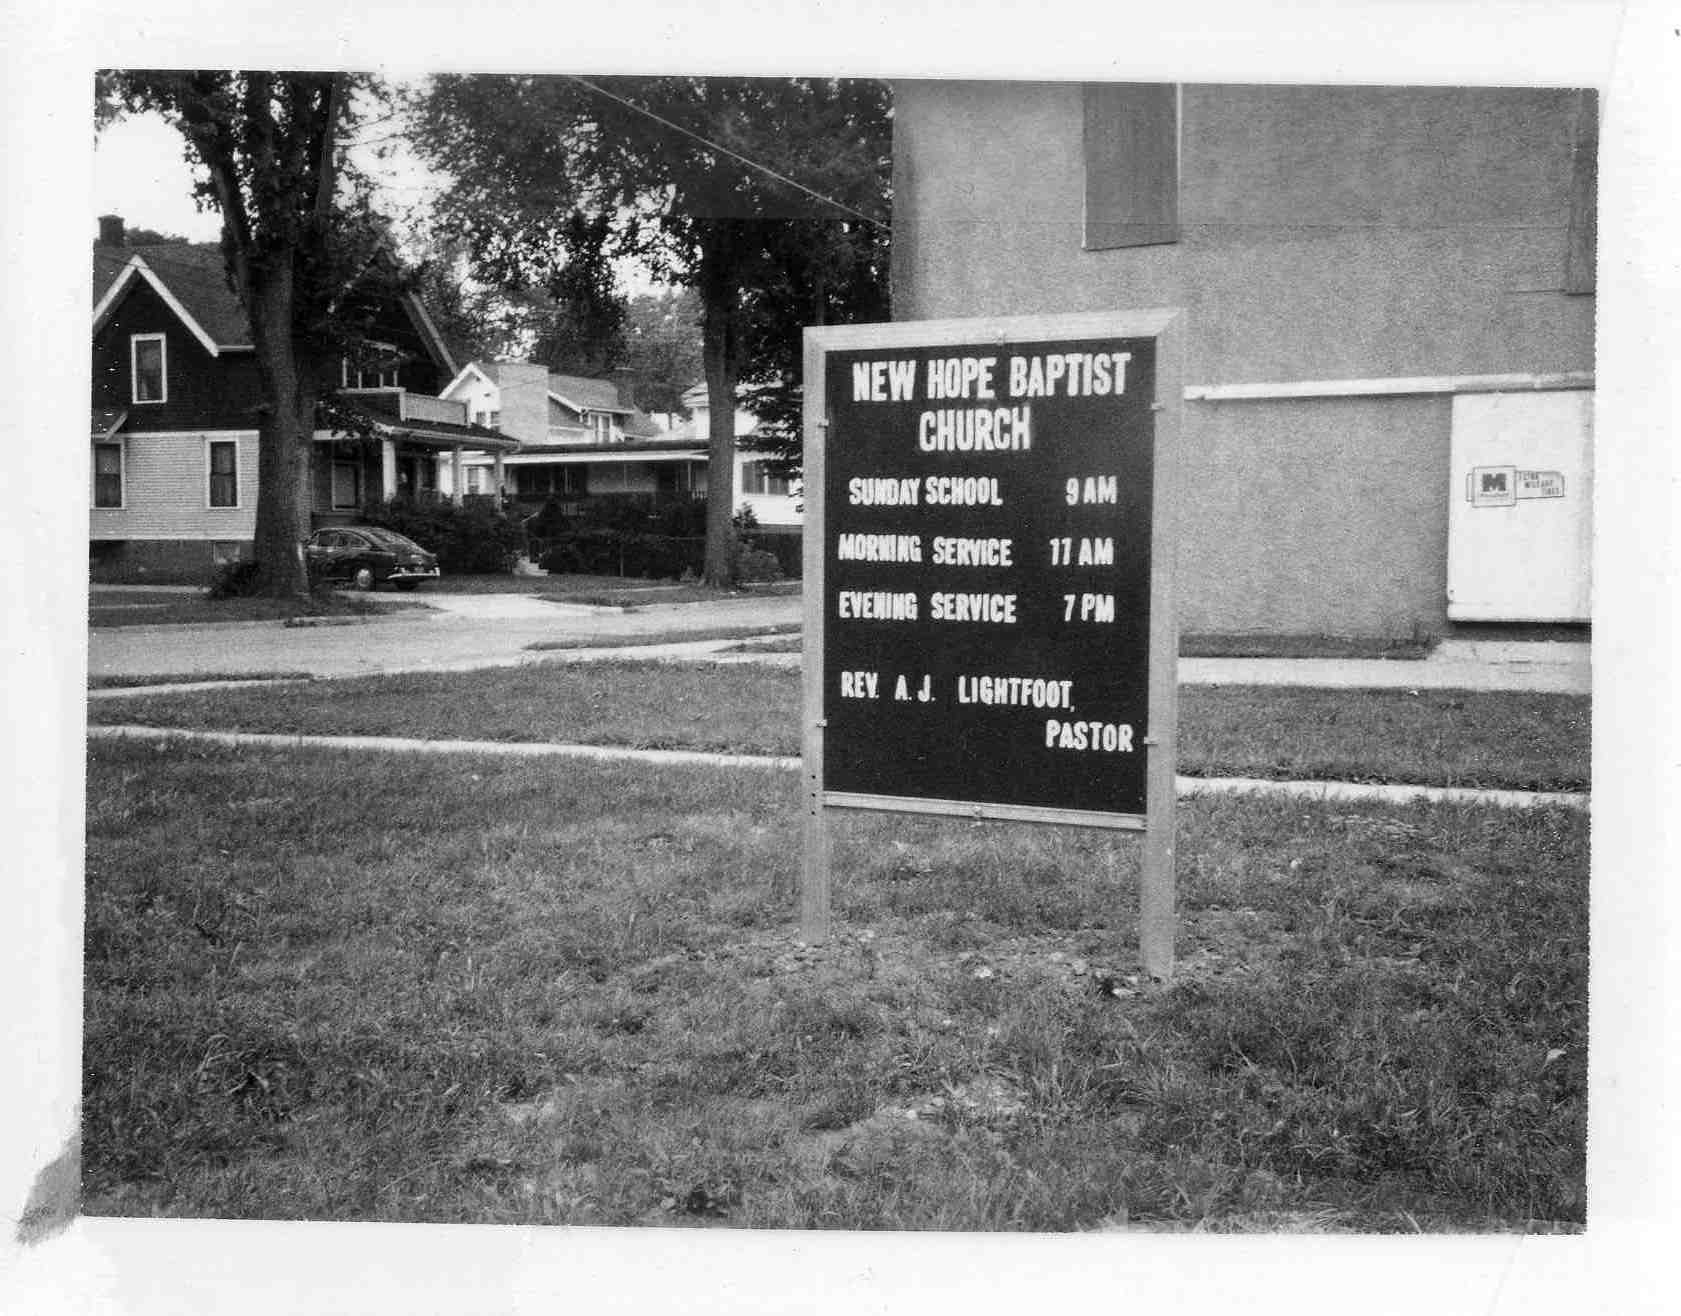 New Hope Baptist Church, 1972 image